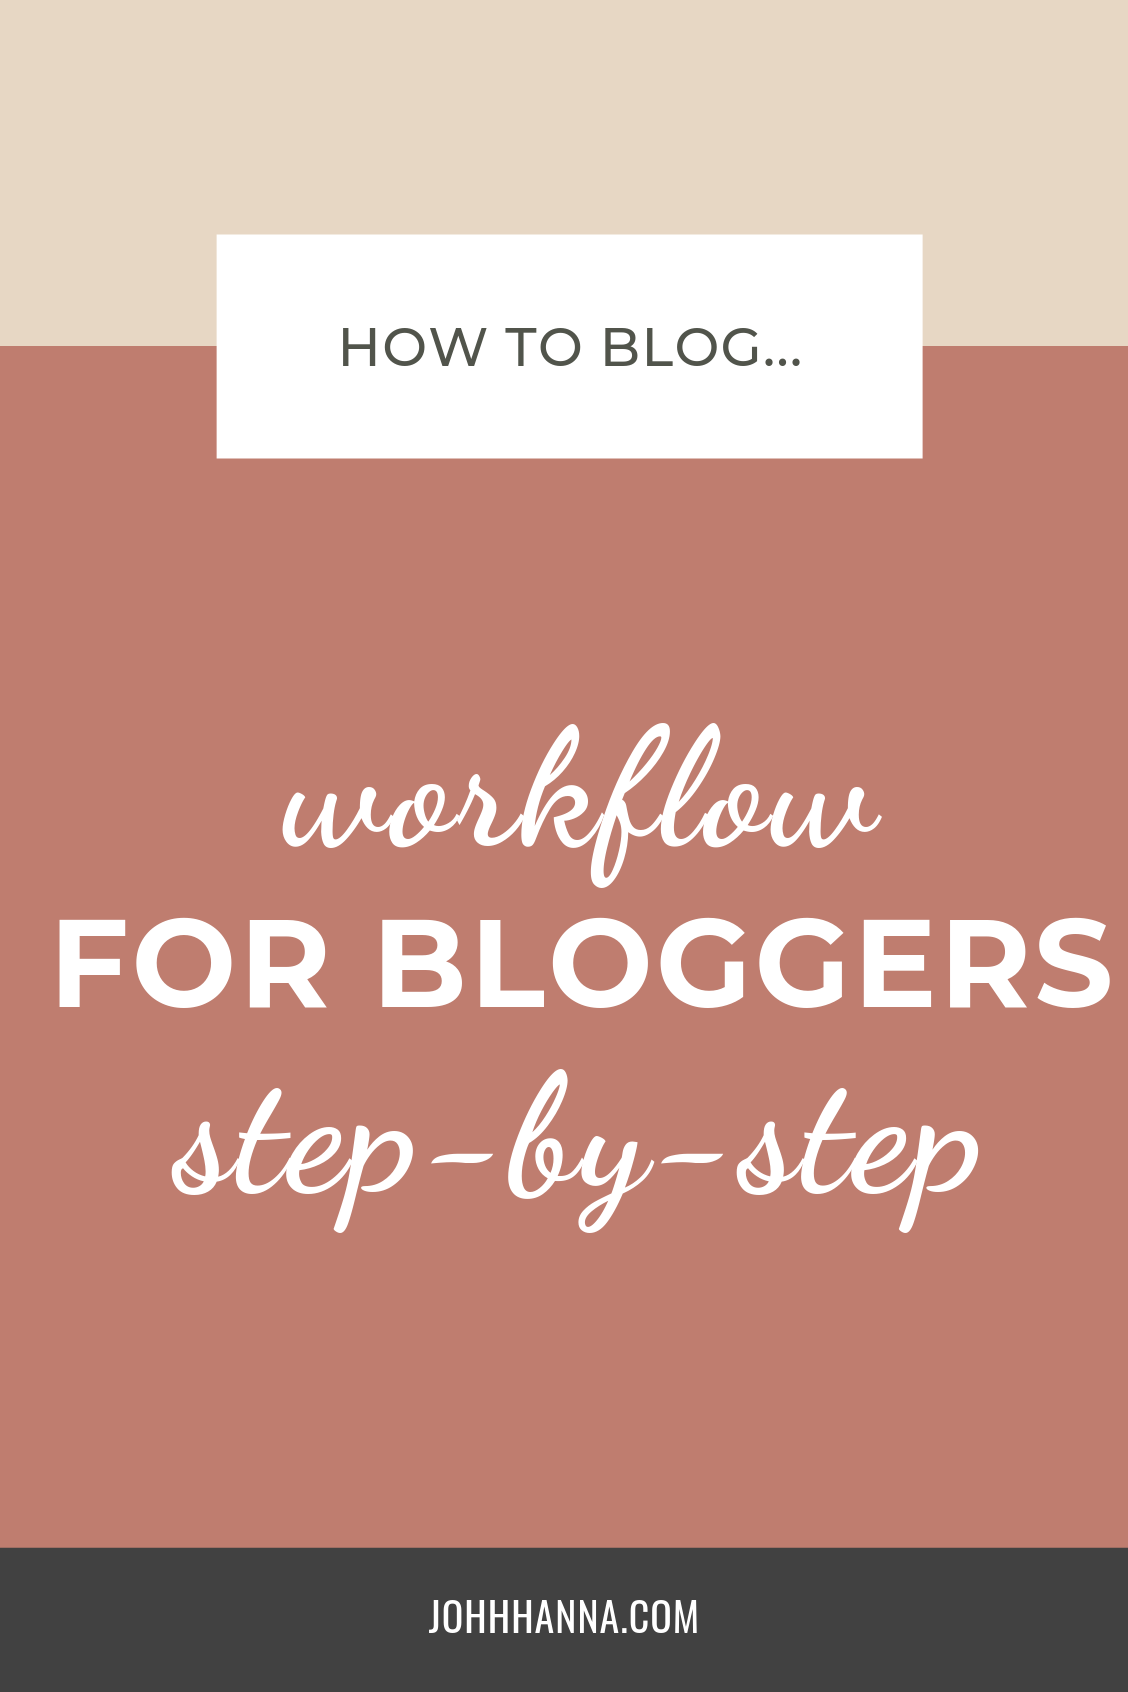 workflow-for-bloggers.png